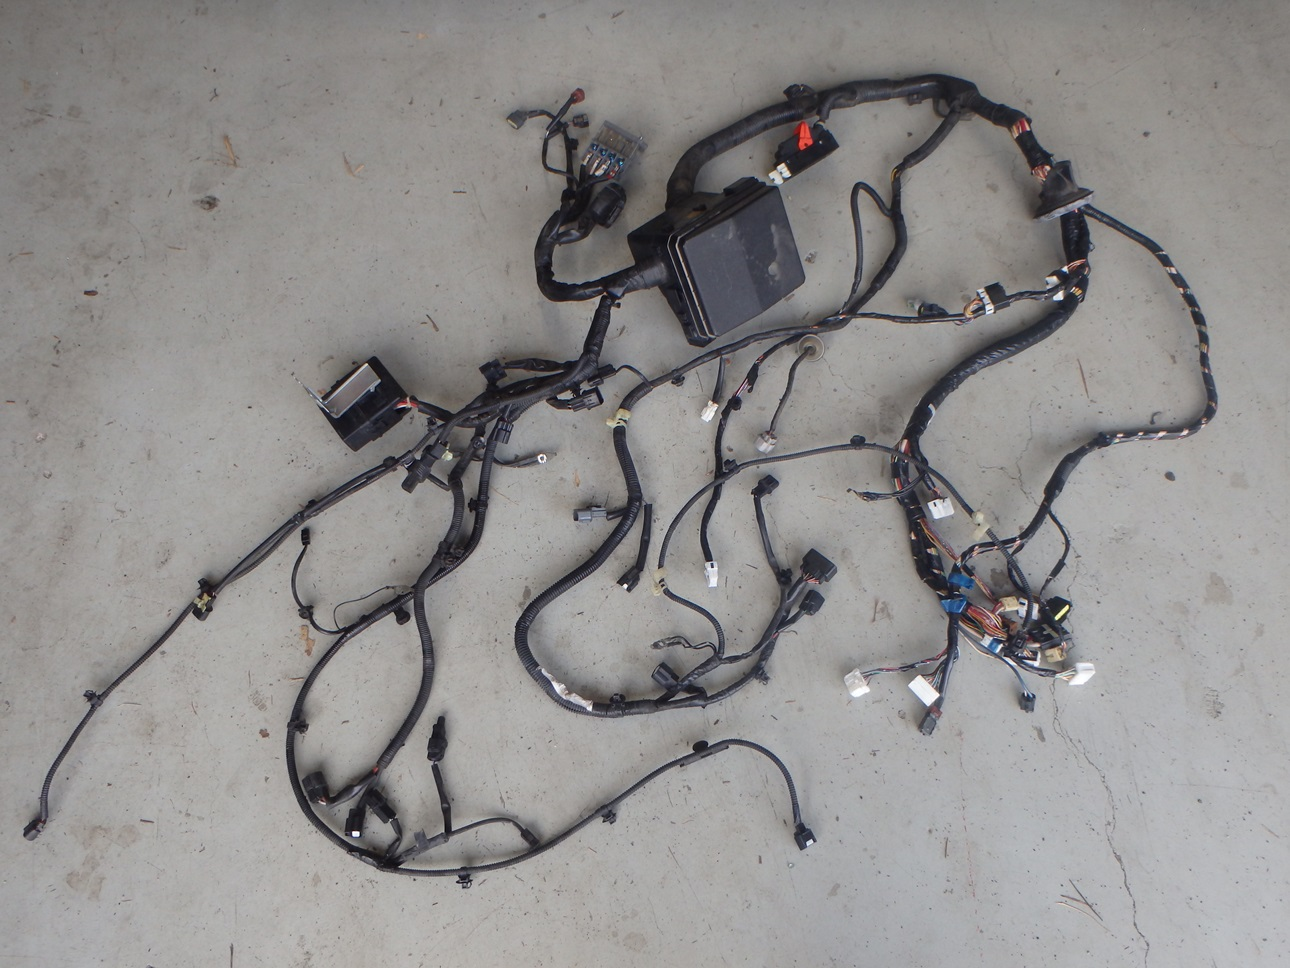 hight resolution of mitsubishi lancer evo x 10 cz4a engine bay headlight fuse box wiring harness